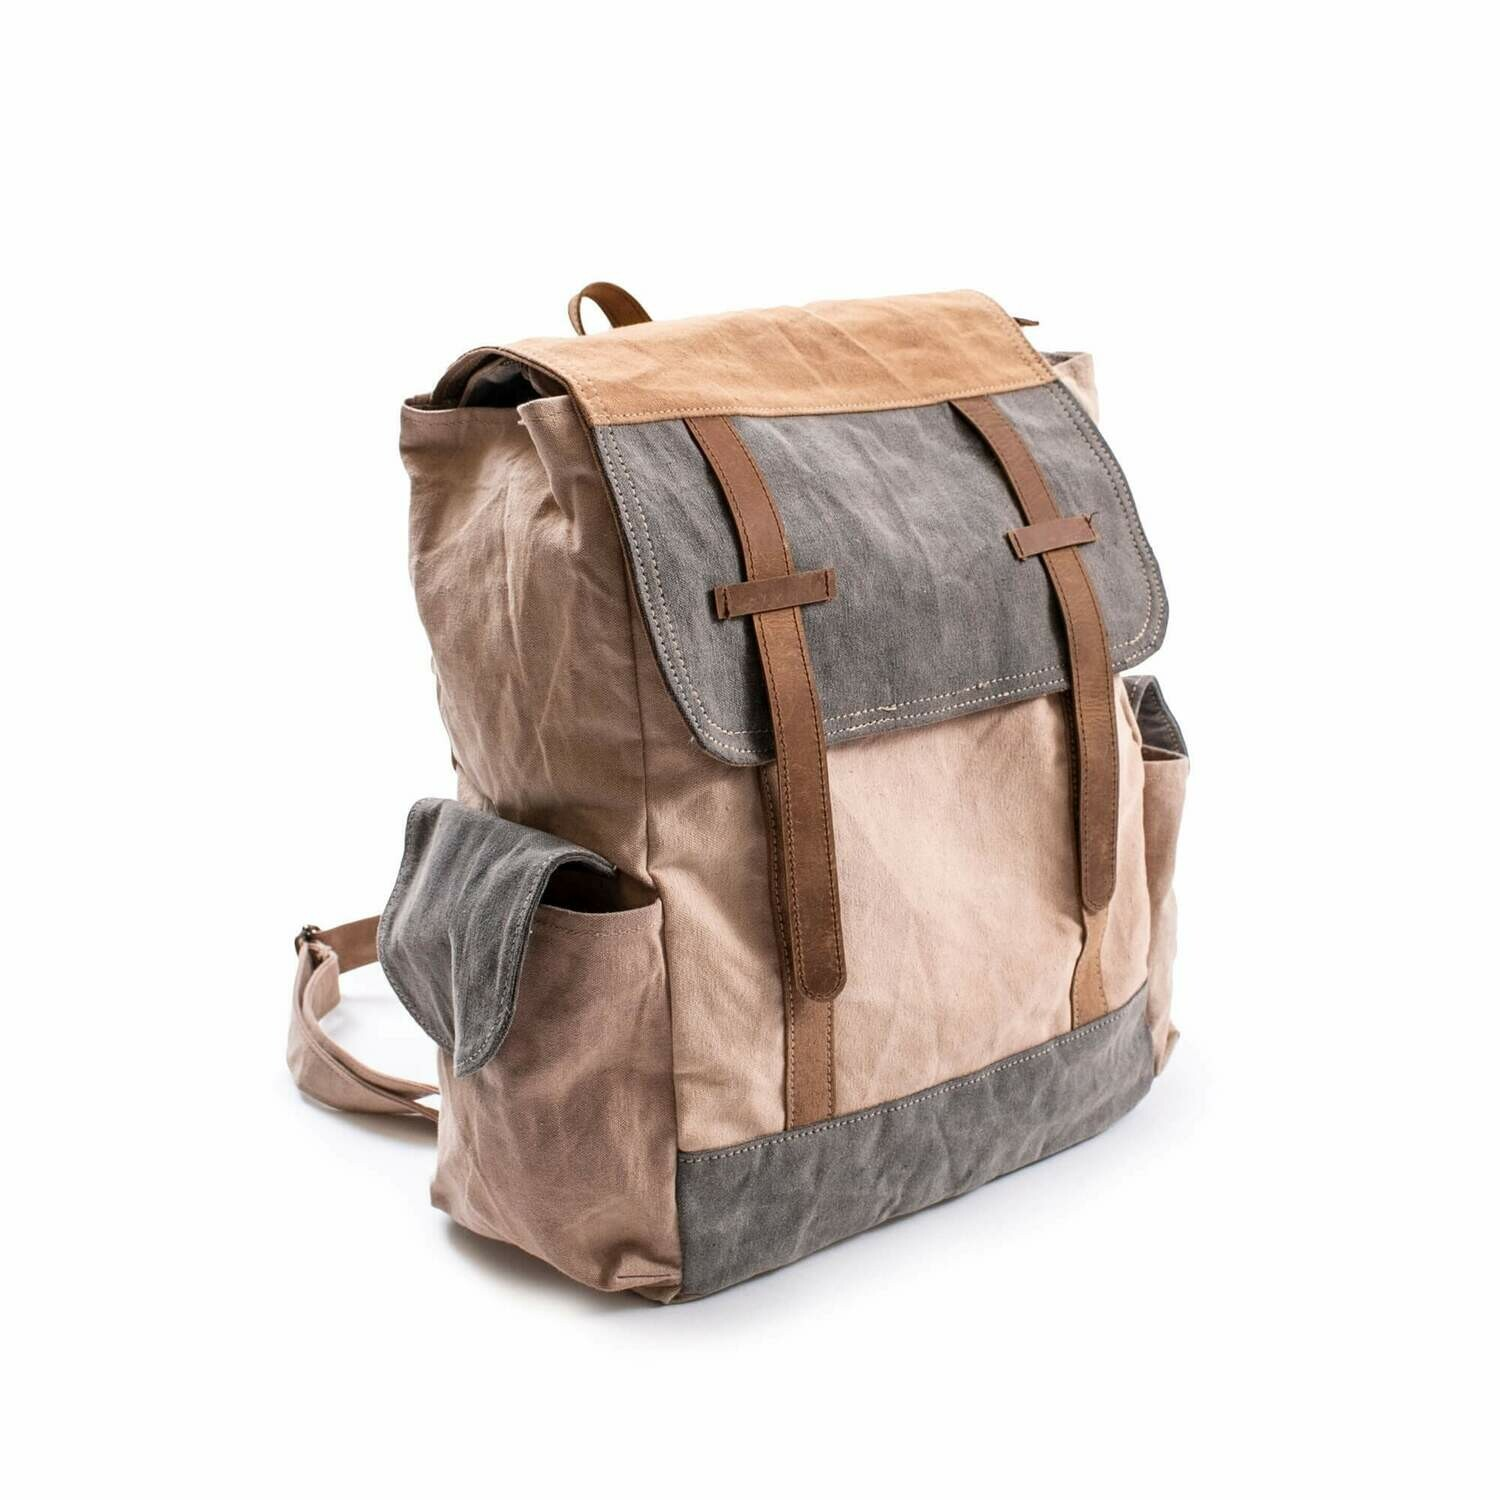 Washed Canvas Backpack with leather trim